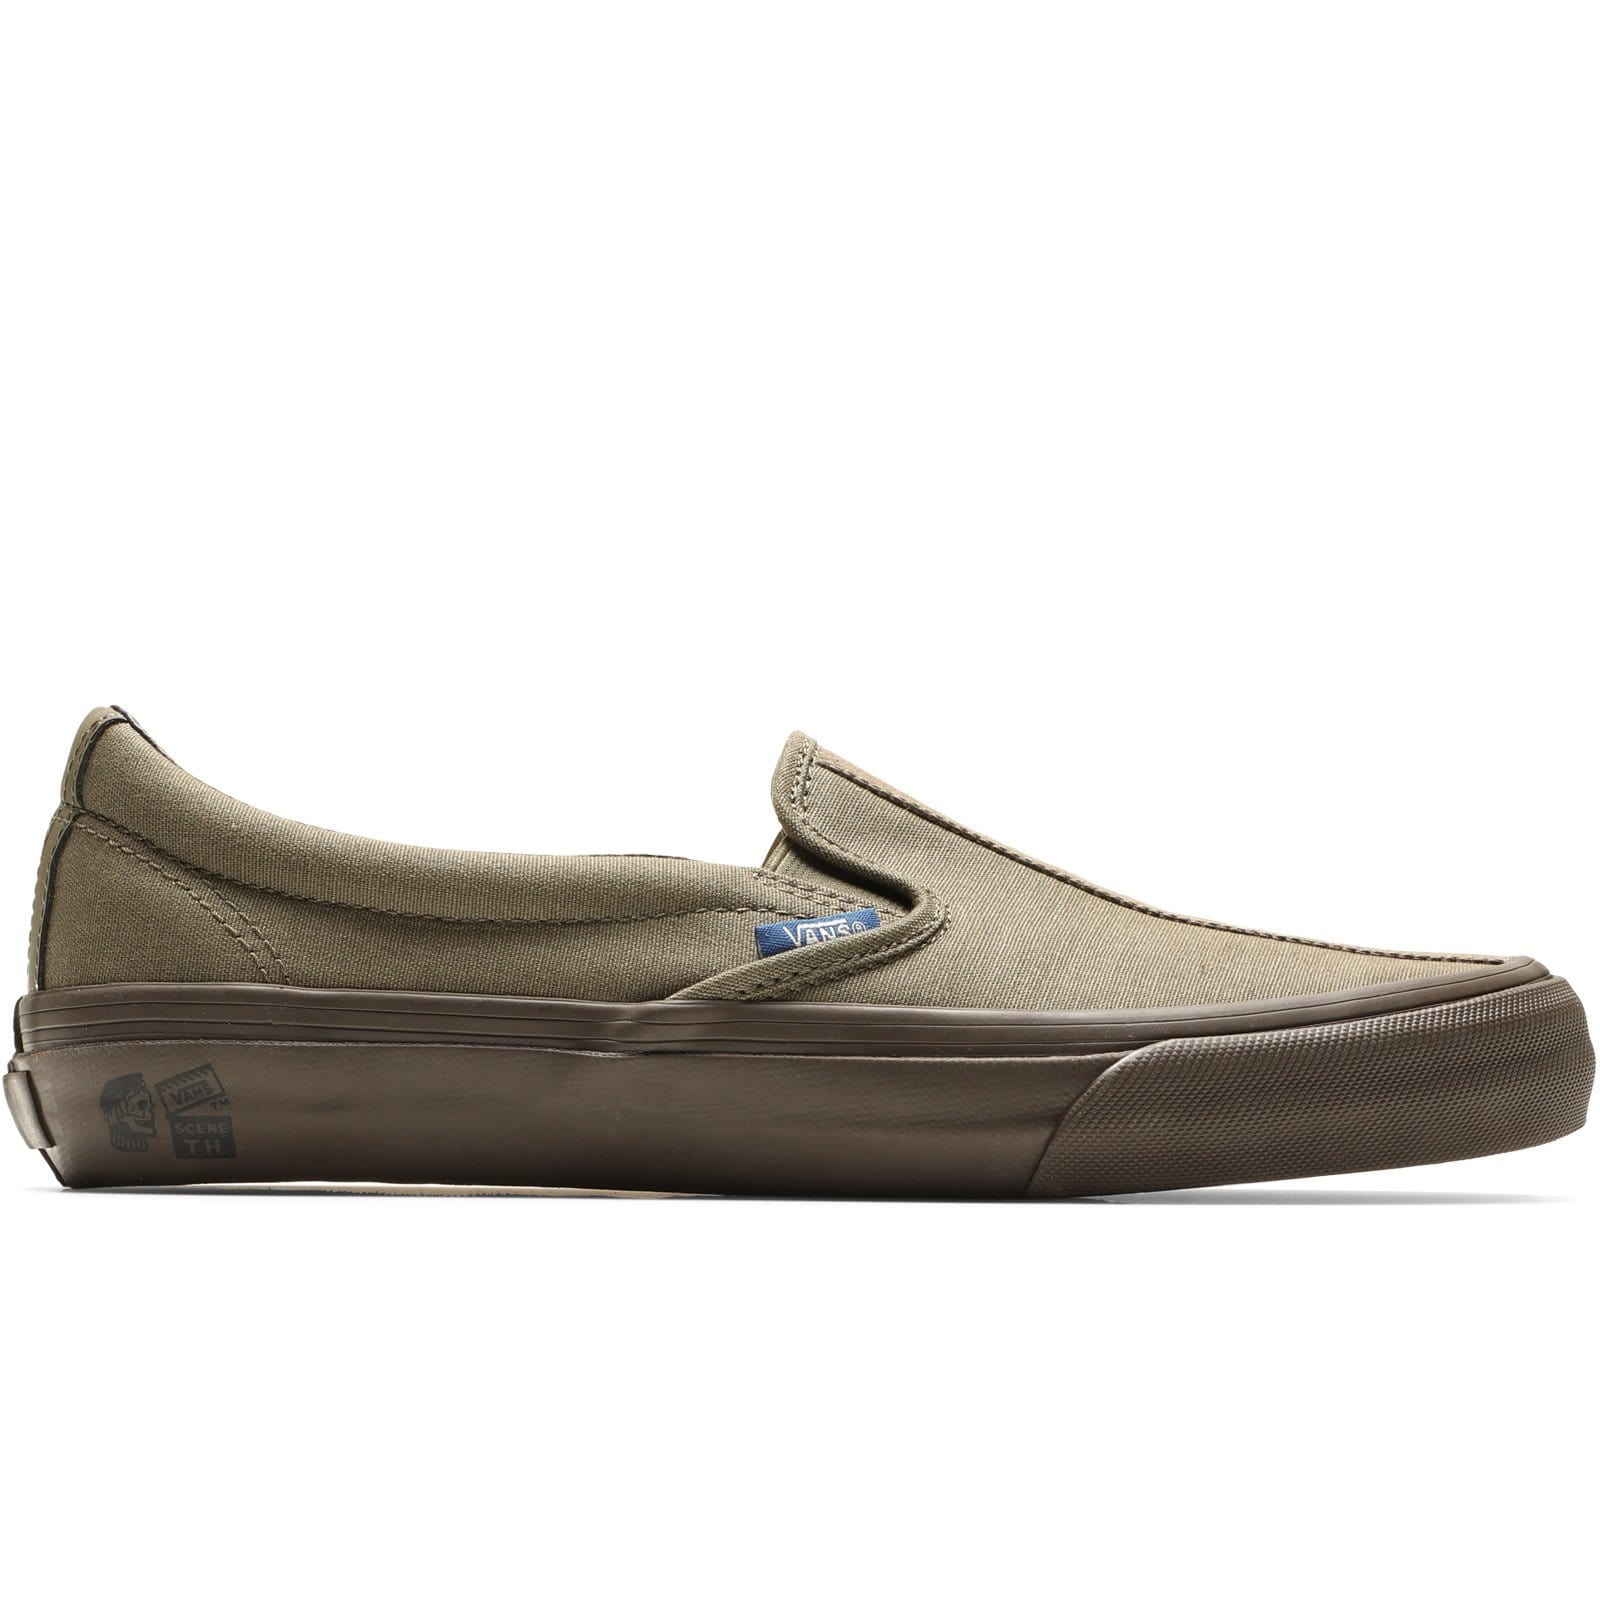 Vault by Vans TH SLIP-ON 66 LX STONE GREY